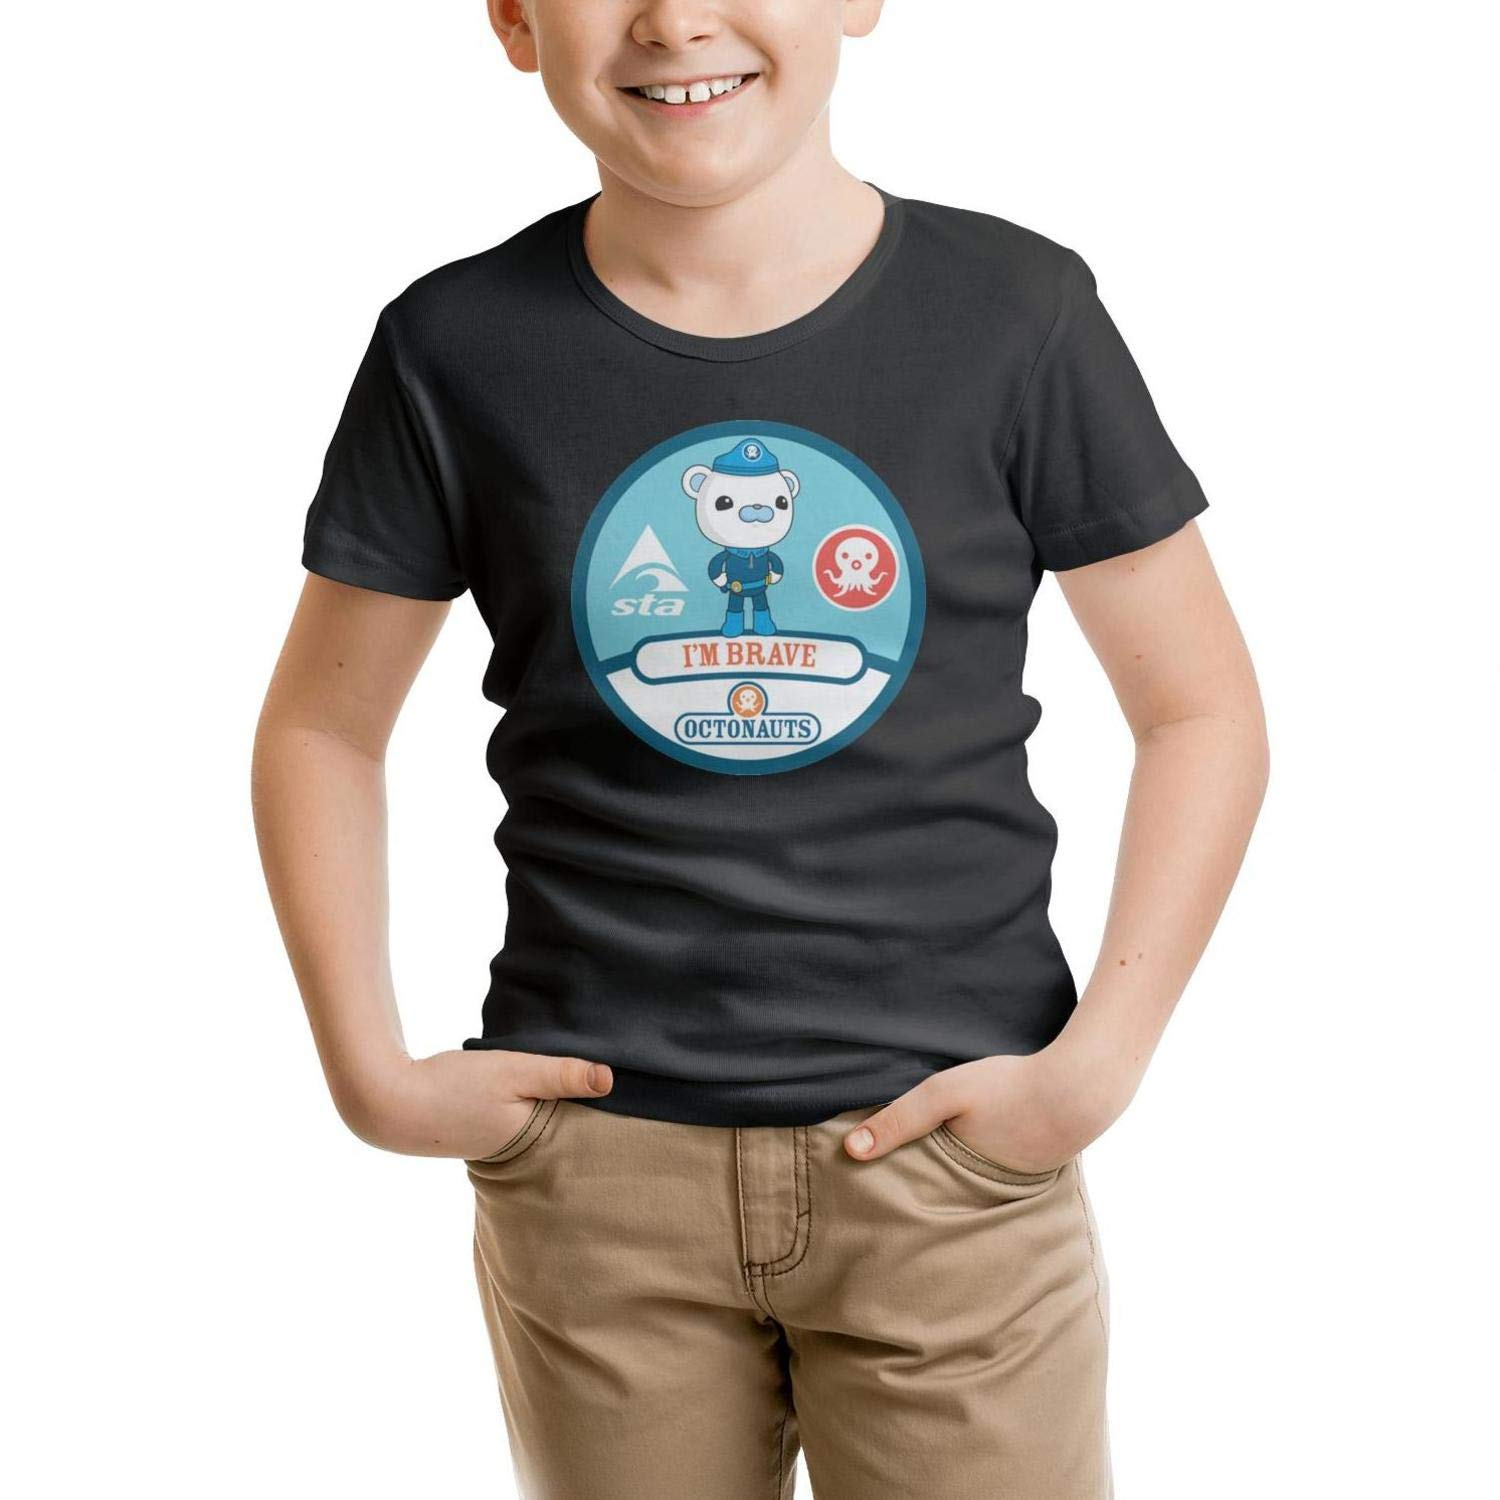 ZZYNG Short Sleeve Boys T-ShirtSoftcomfort Crew Neck Friends Tee Breathable